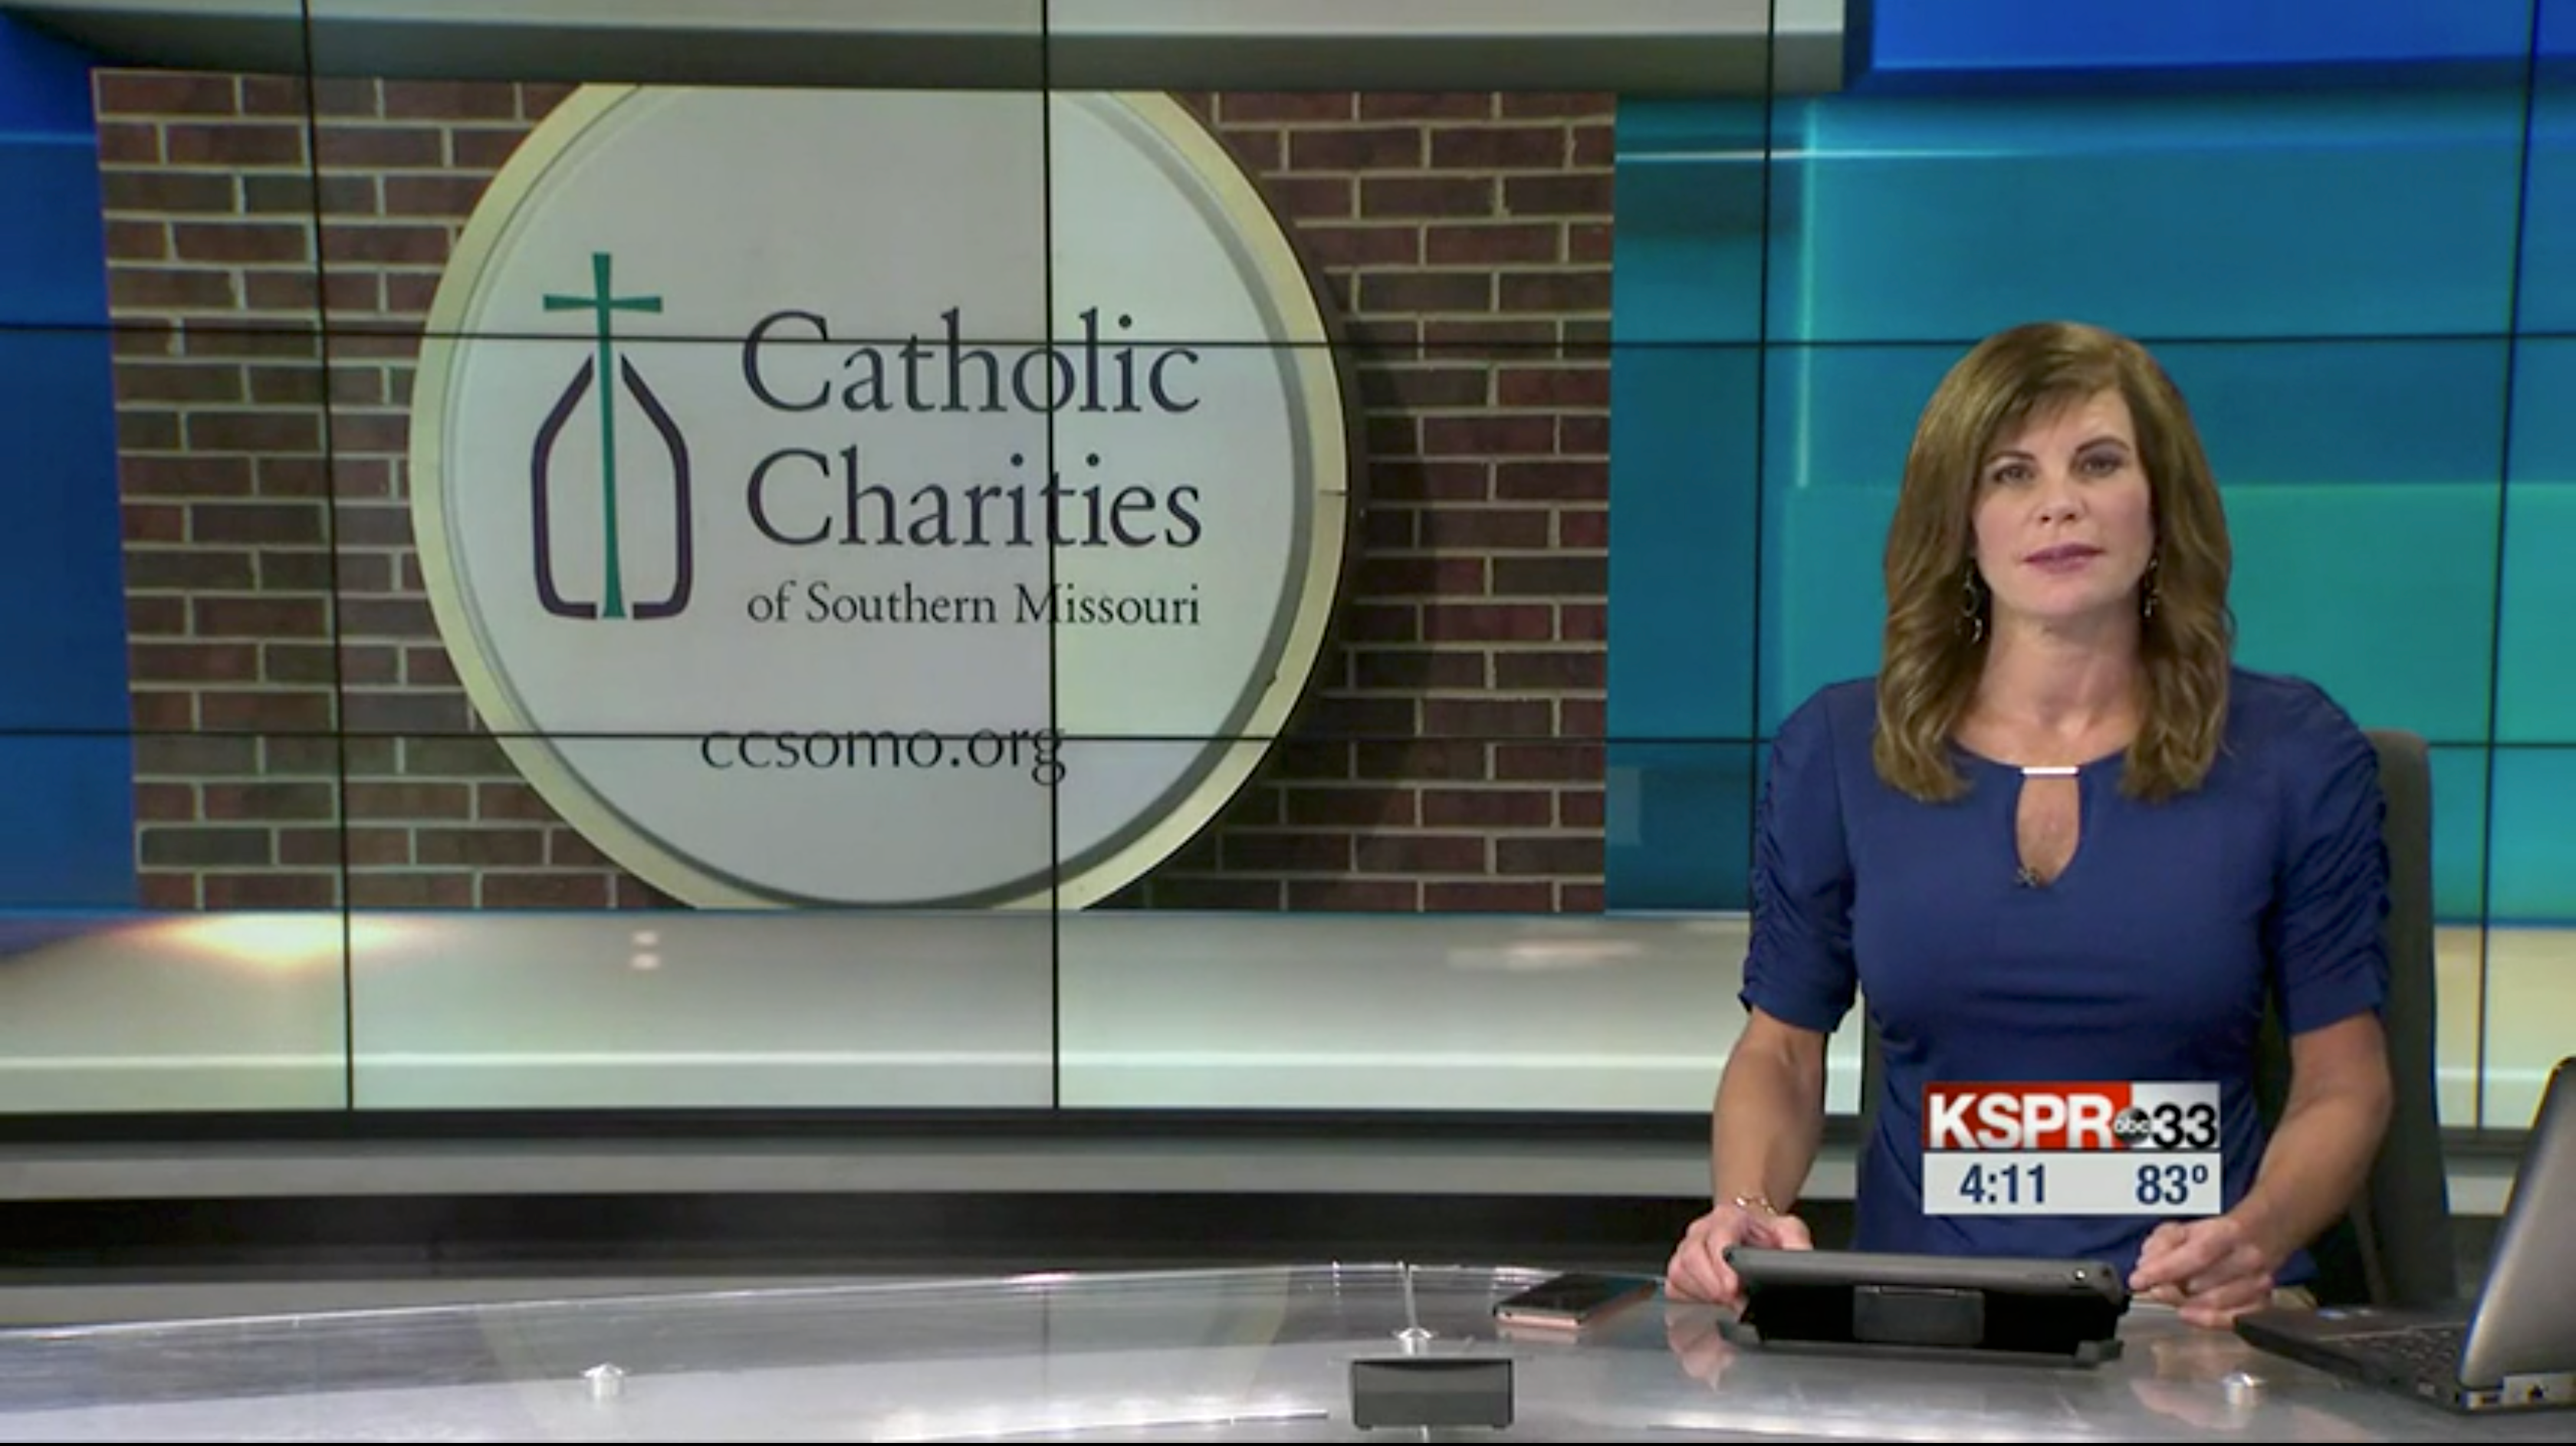 IN THE NEWS - Catholic Charities of Southern Missouri reports increase in need for those needing assistance in Springfield